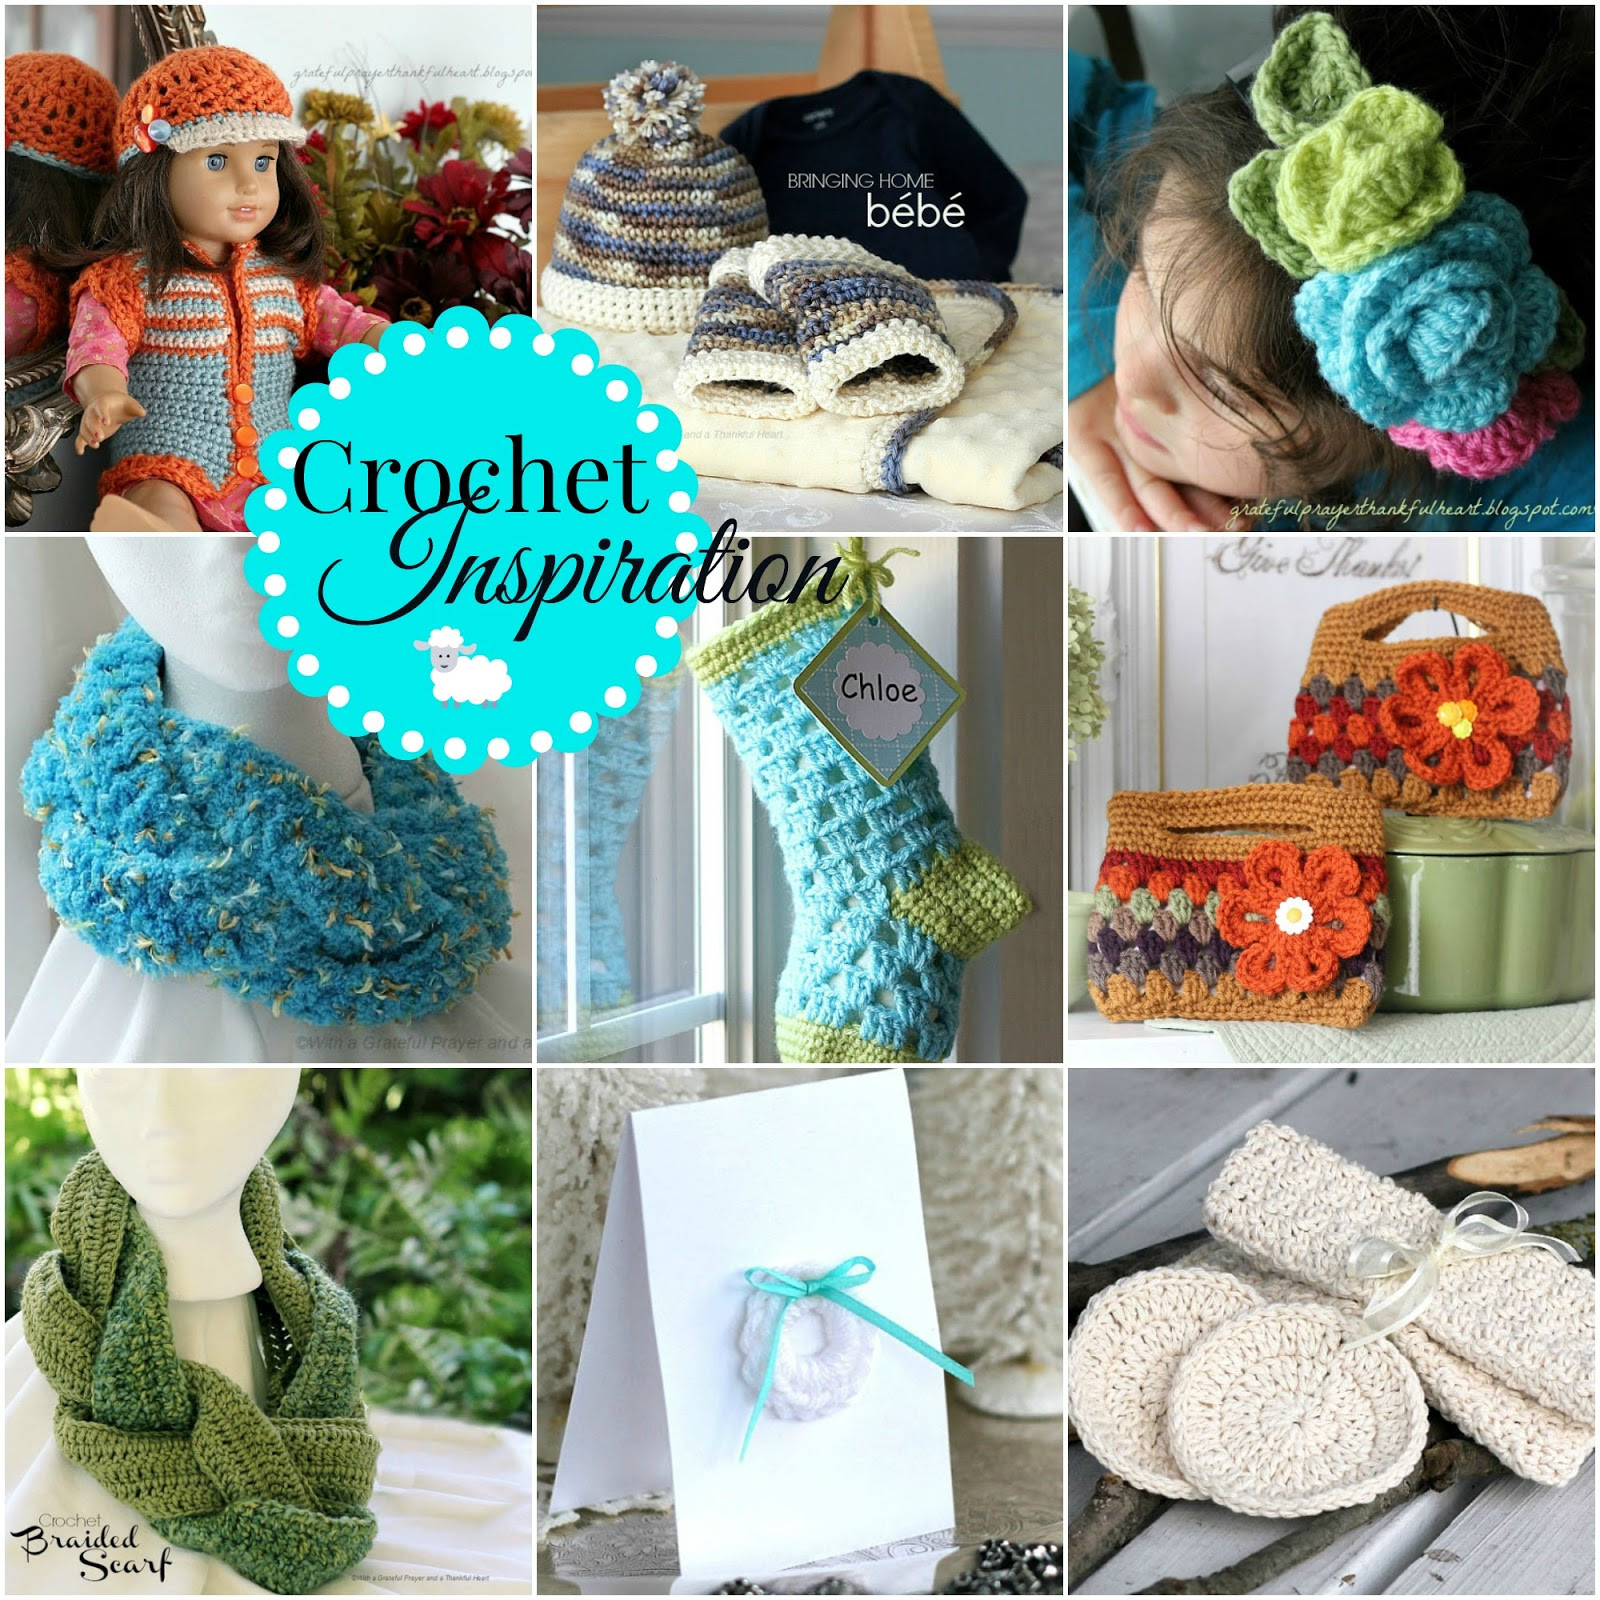 Best ideas about Crochet Gift Ideas . Save or Pin With a Grateful Prayer and a Thankful Heart Crochet Now.